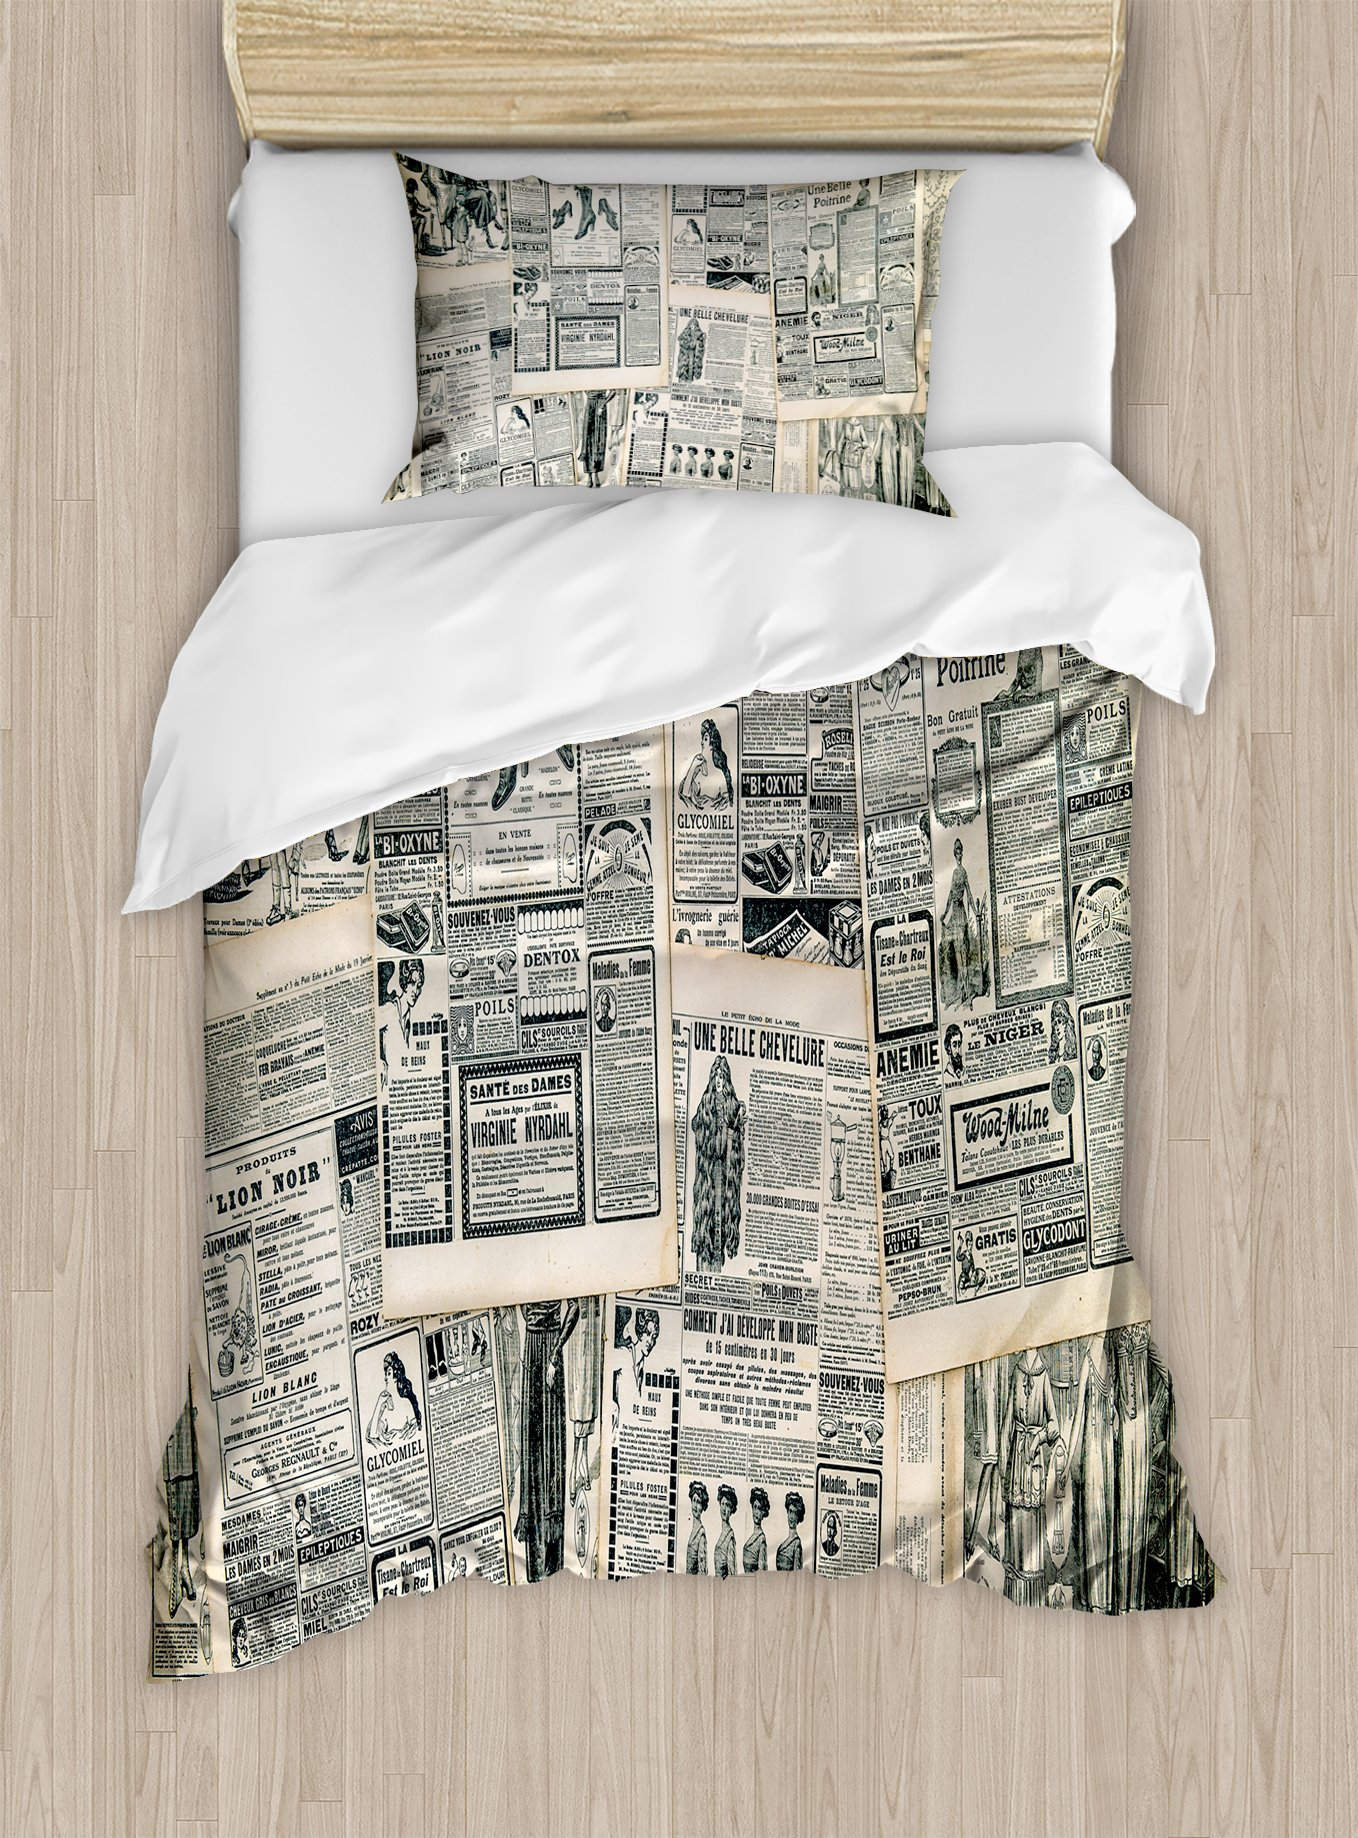 Ambesonne Antique Duvet Cover Set Twin Size, Vintage Style Sepia Toned Newspaper Print with Old Fashioned Illustrations, Decorative 2 Piece Bedding Set with 1 Pillow Sham, Dark Green Beige